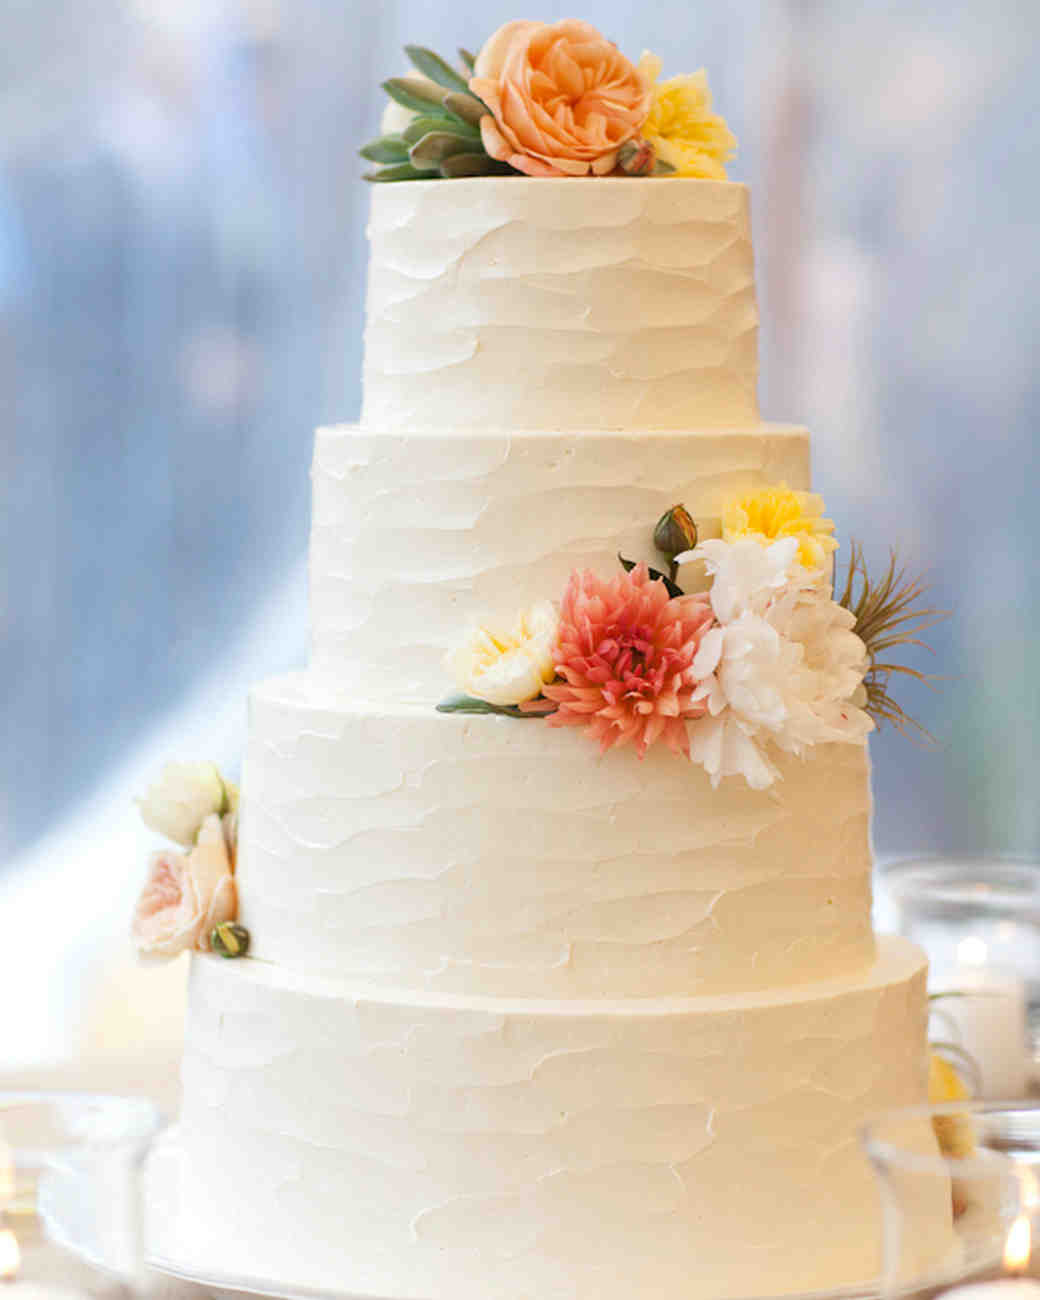 Wedding Cakes With Flowers On Top: 104 White Wedding Cakes That Make The Case For Going